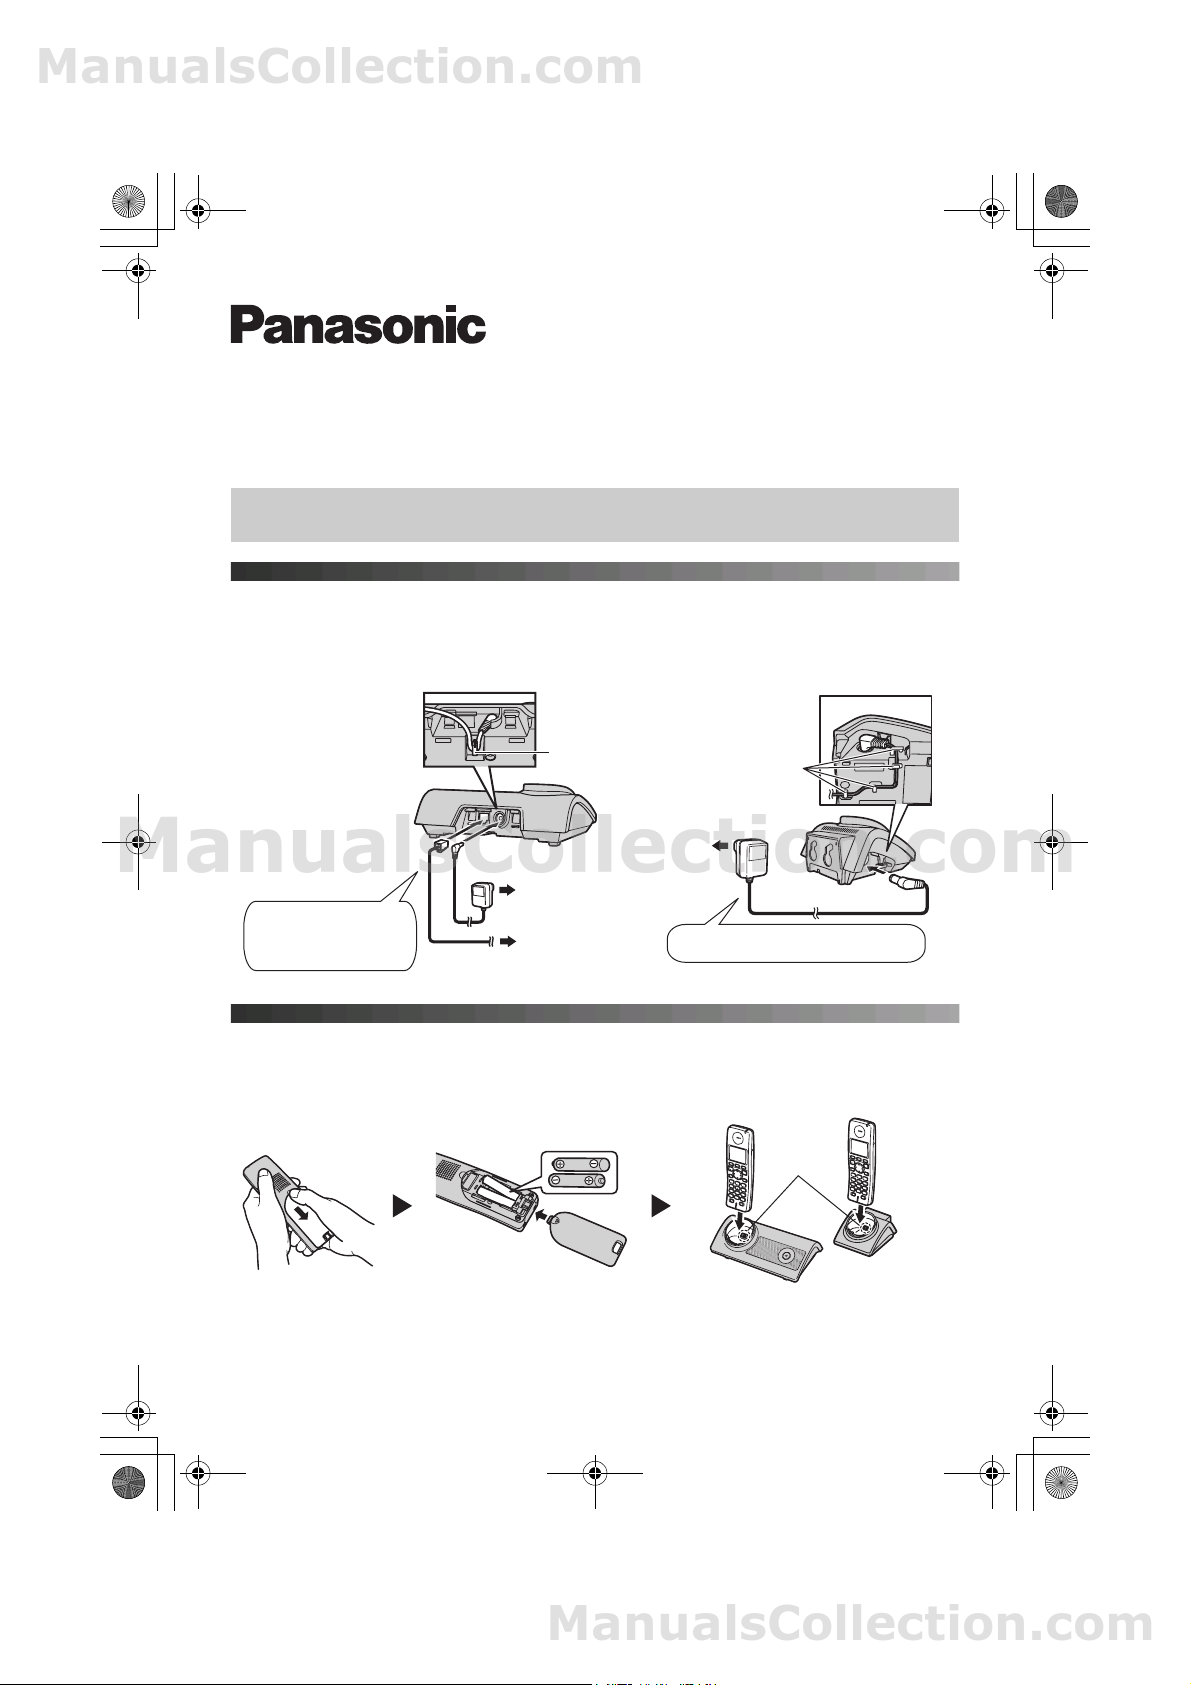 Panasonic KXTG8102E Operating Instructions (English)